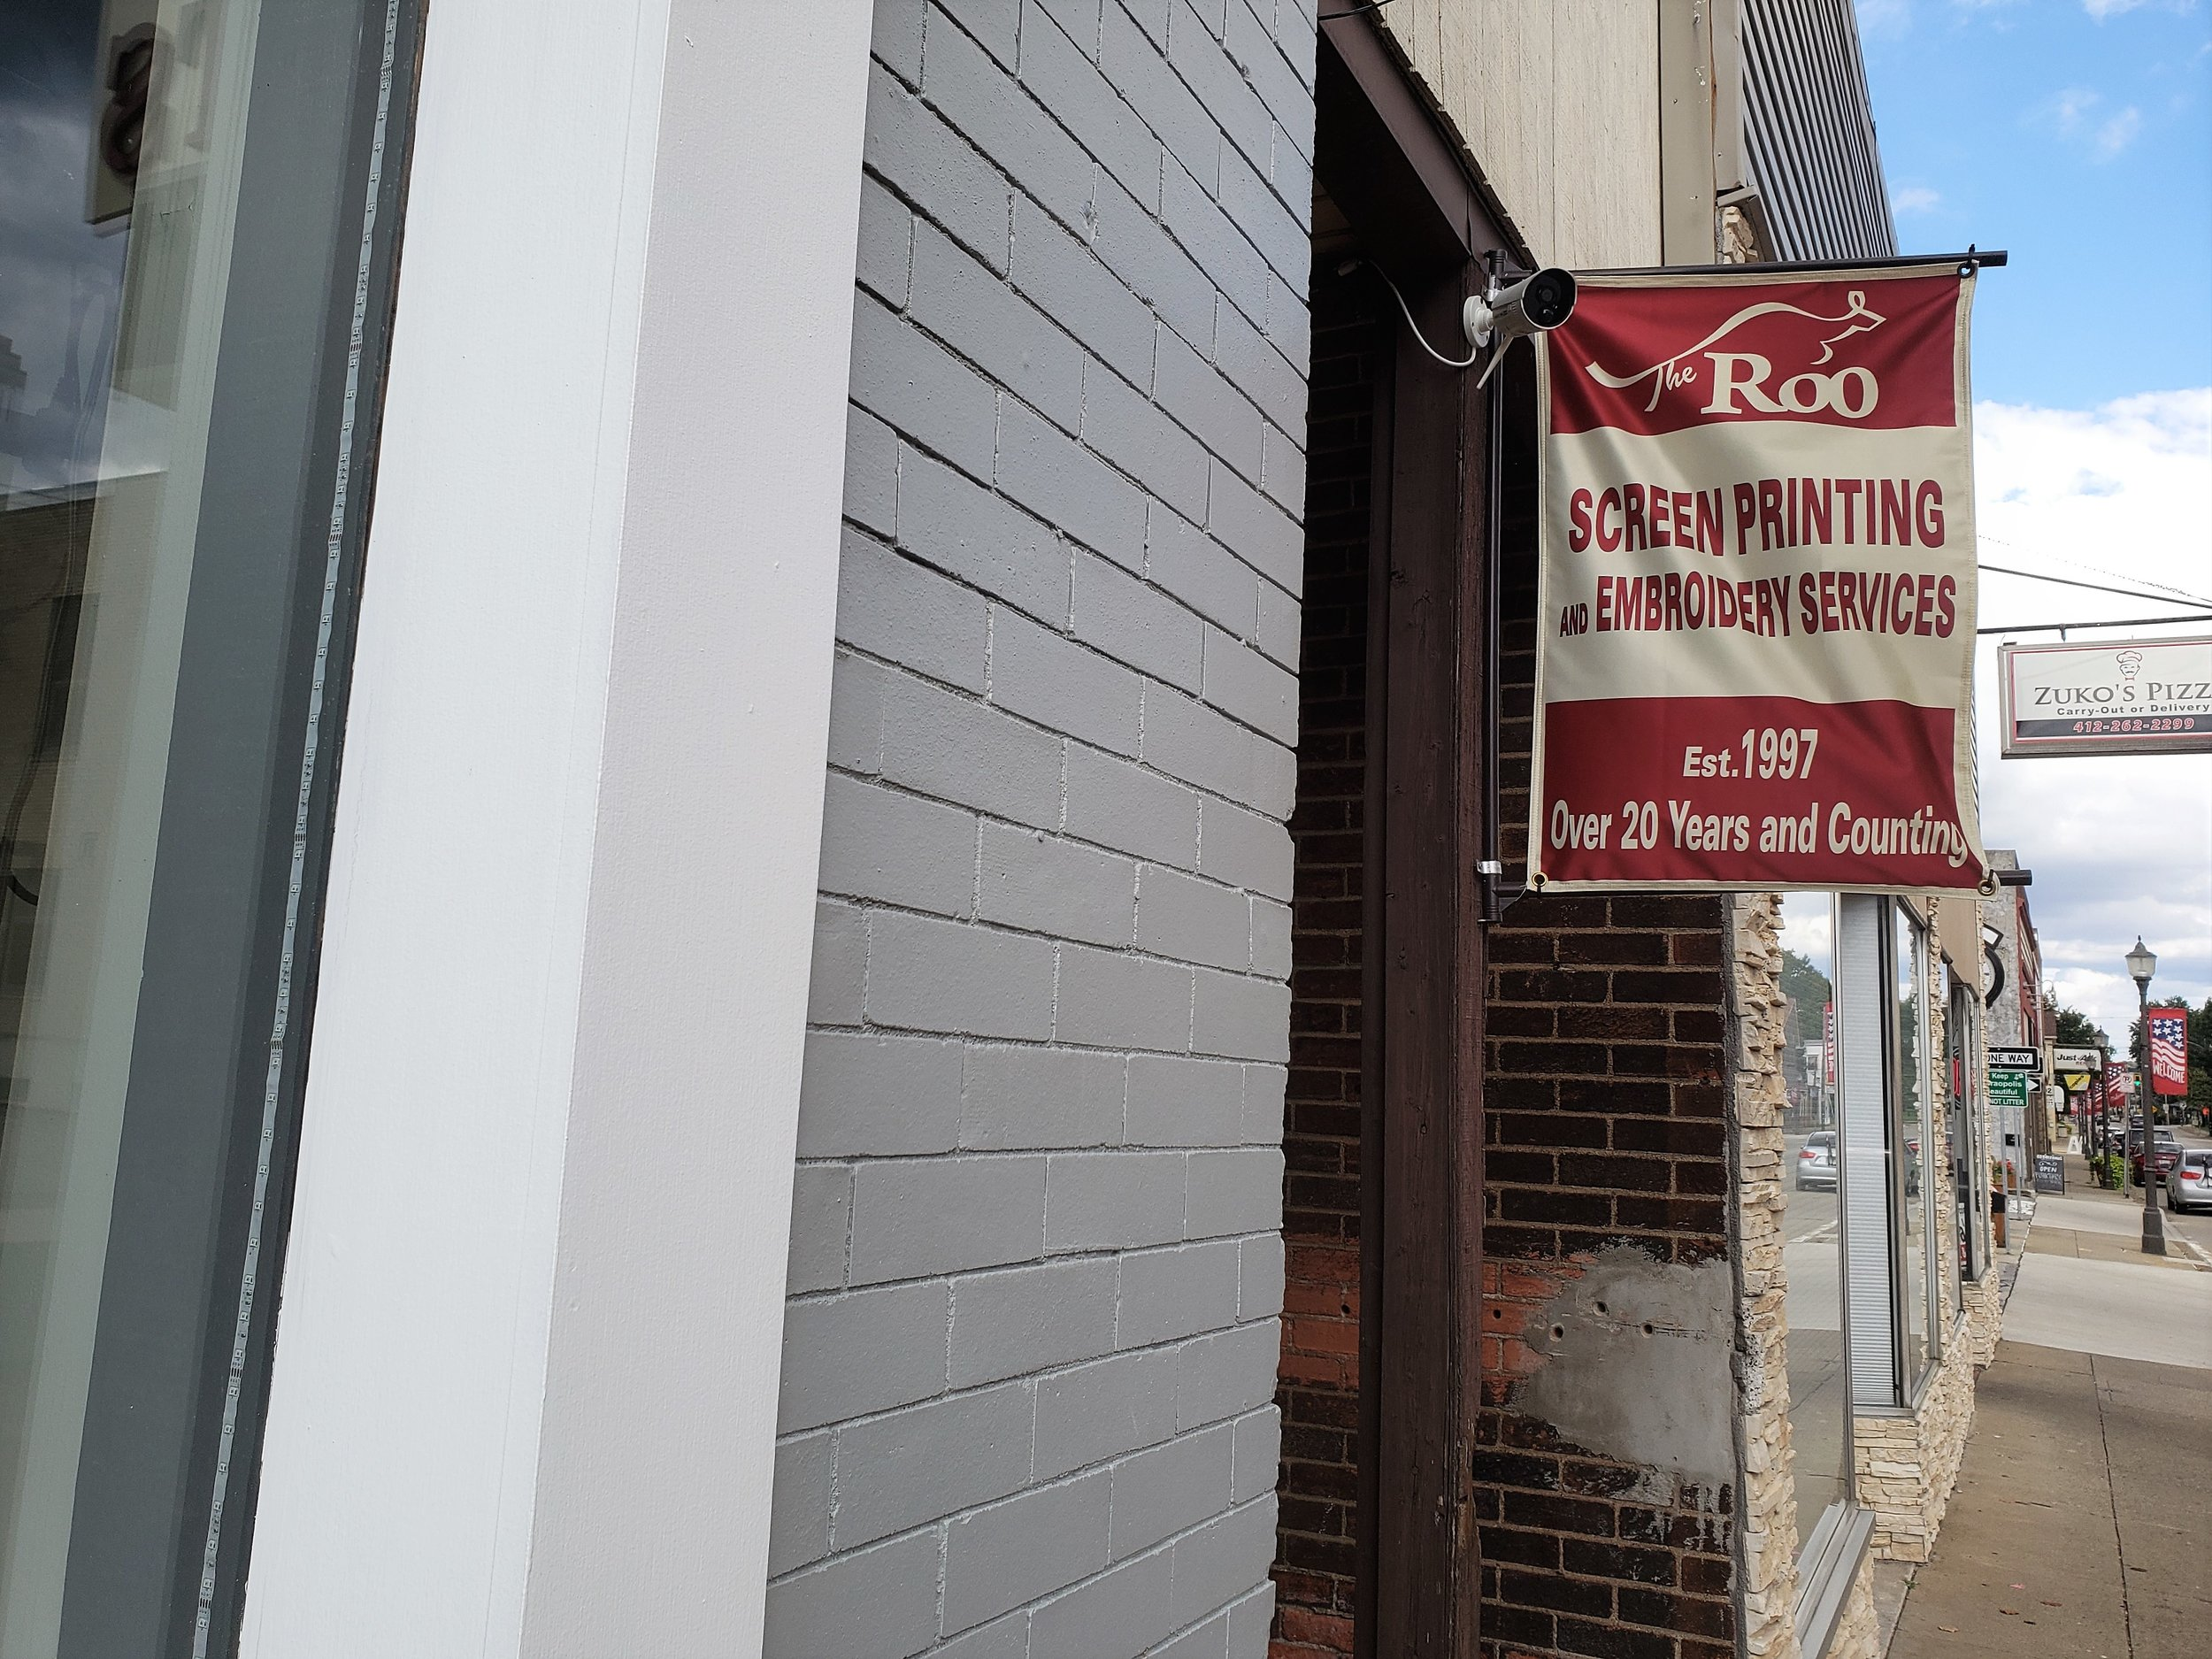 The Roo Screen Printing and Embroidery Services - 1005 5th Ave, (412) 279-9889